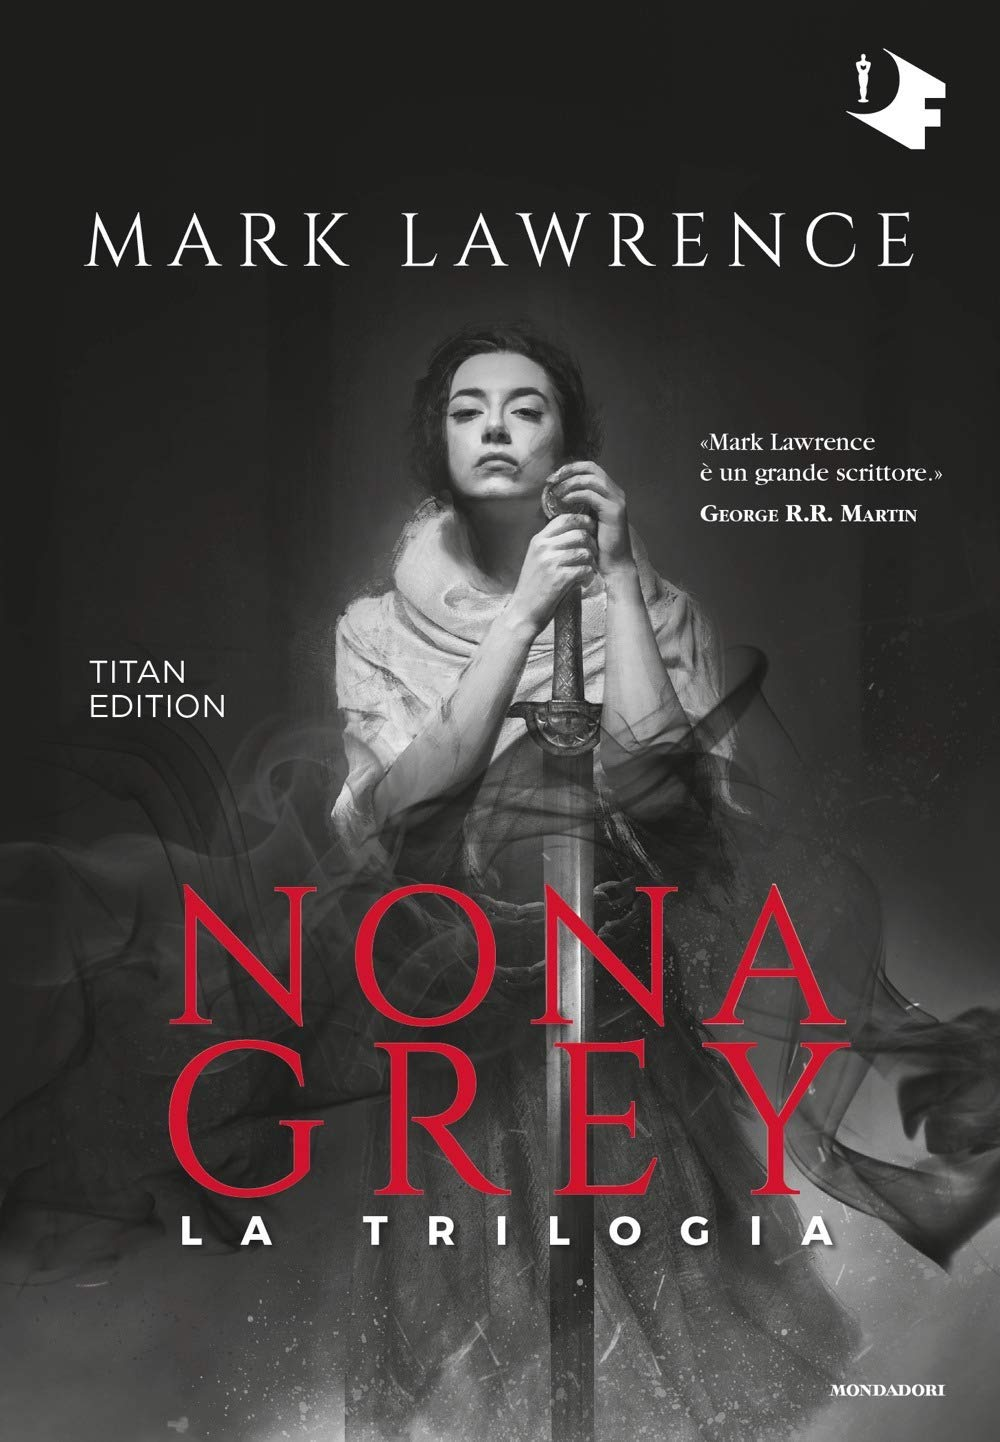 Nona Grey. Trilogia di Mark Lawrence